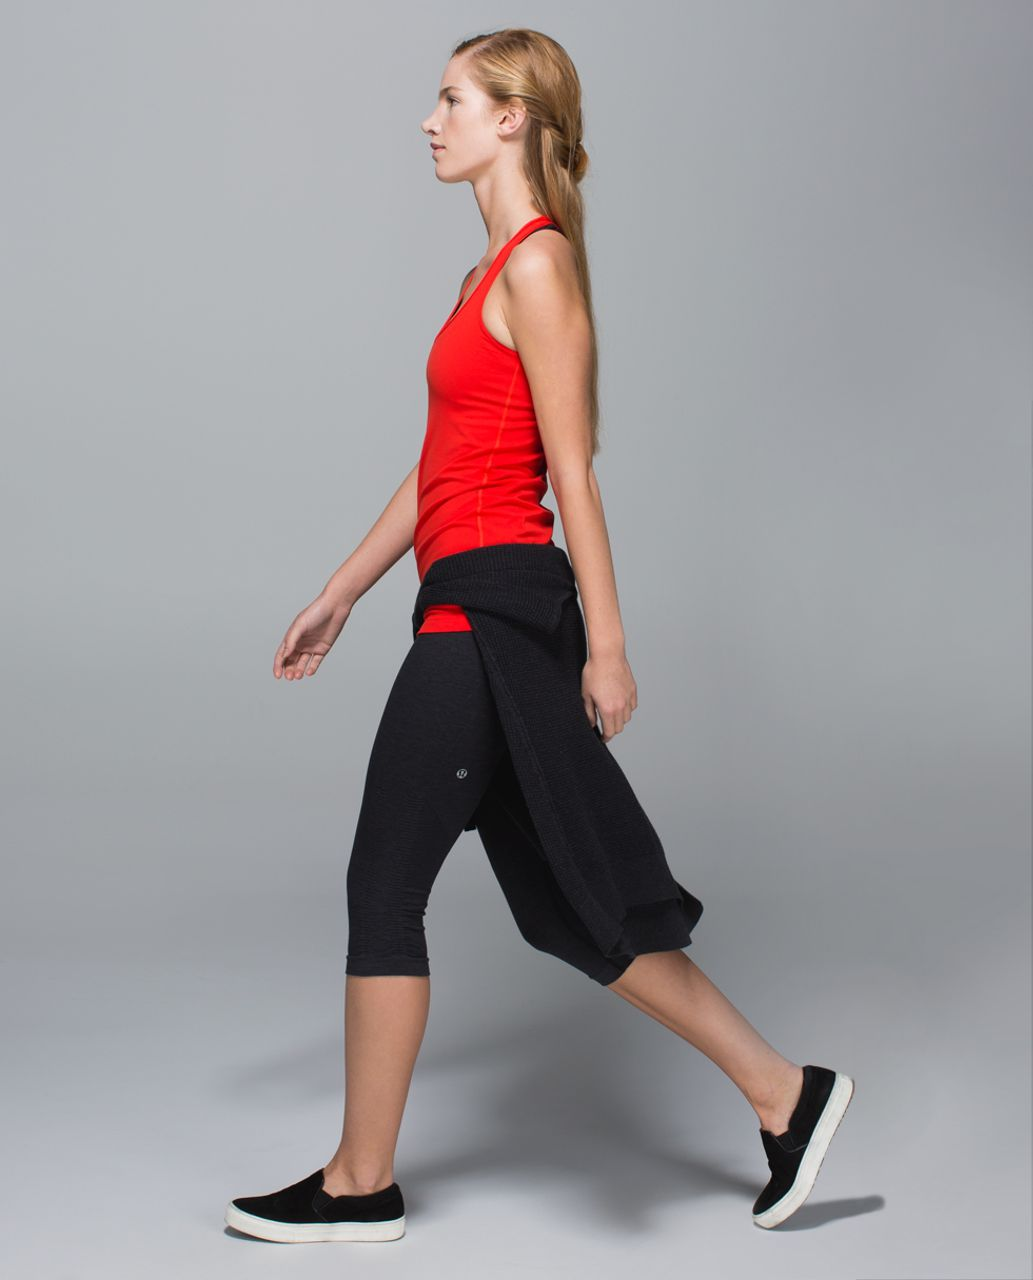 Lululemon Cool Racerback - Flaming Tomato